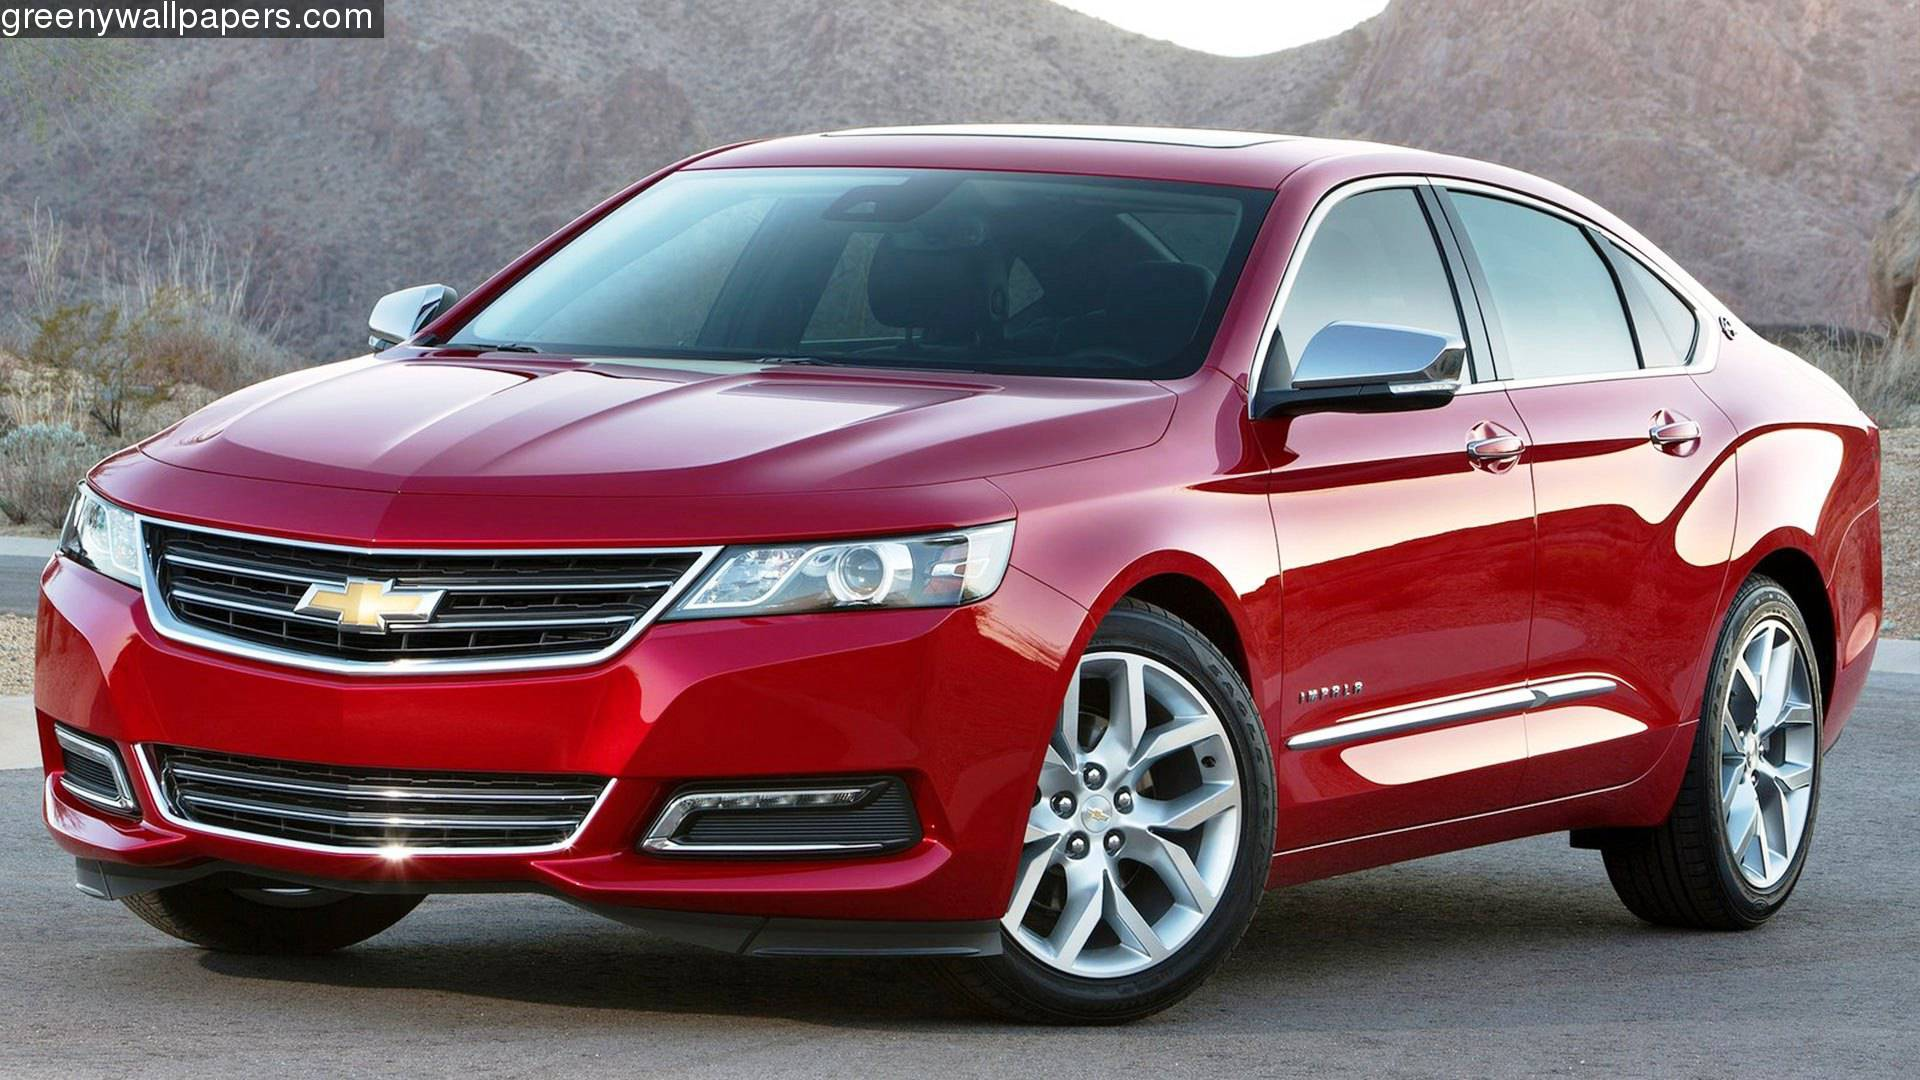 Chevrolet Impala Provide 1920x1080 Wallpapers